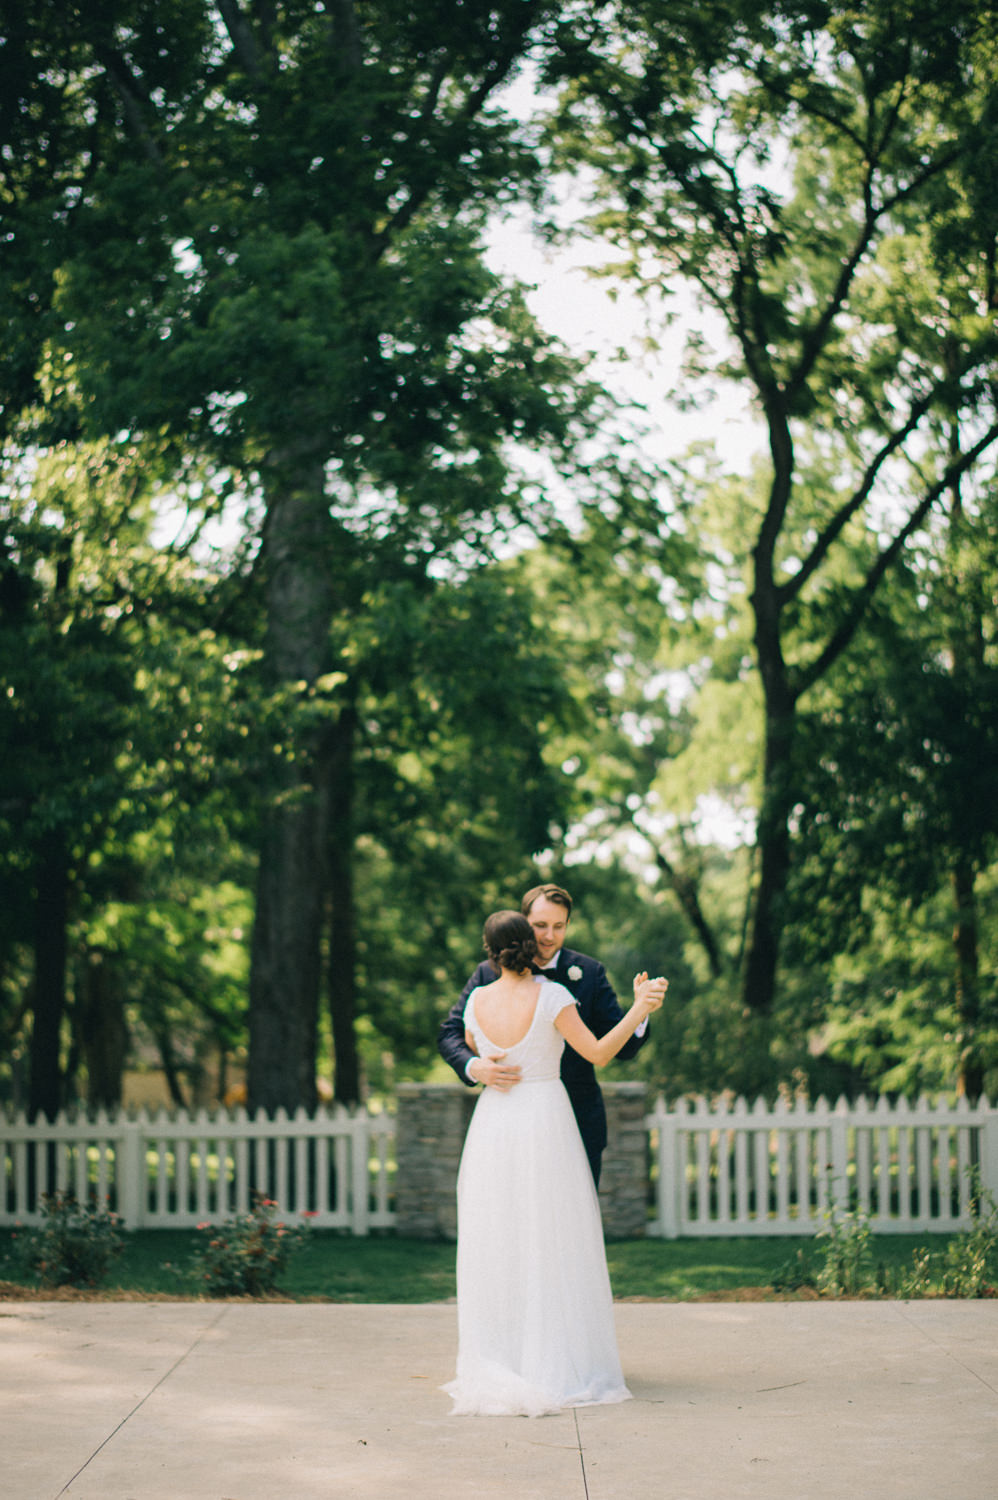 BelleMeadePlantationWedding_NashvilleWedding_by_TheImageIsFoundPhotography_0053.jpg